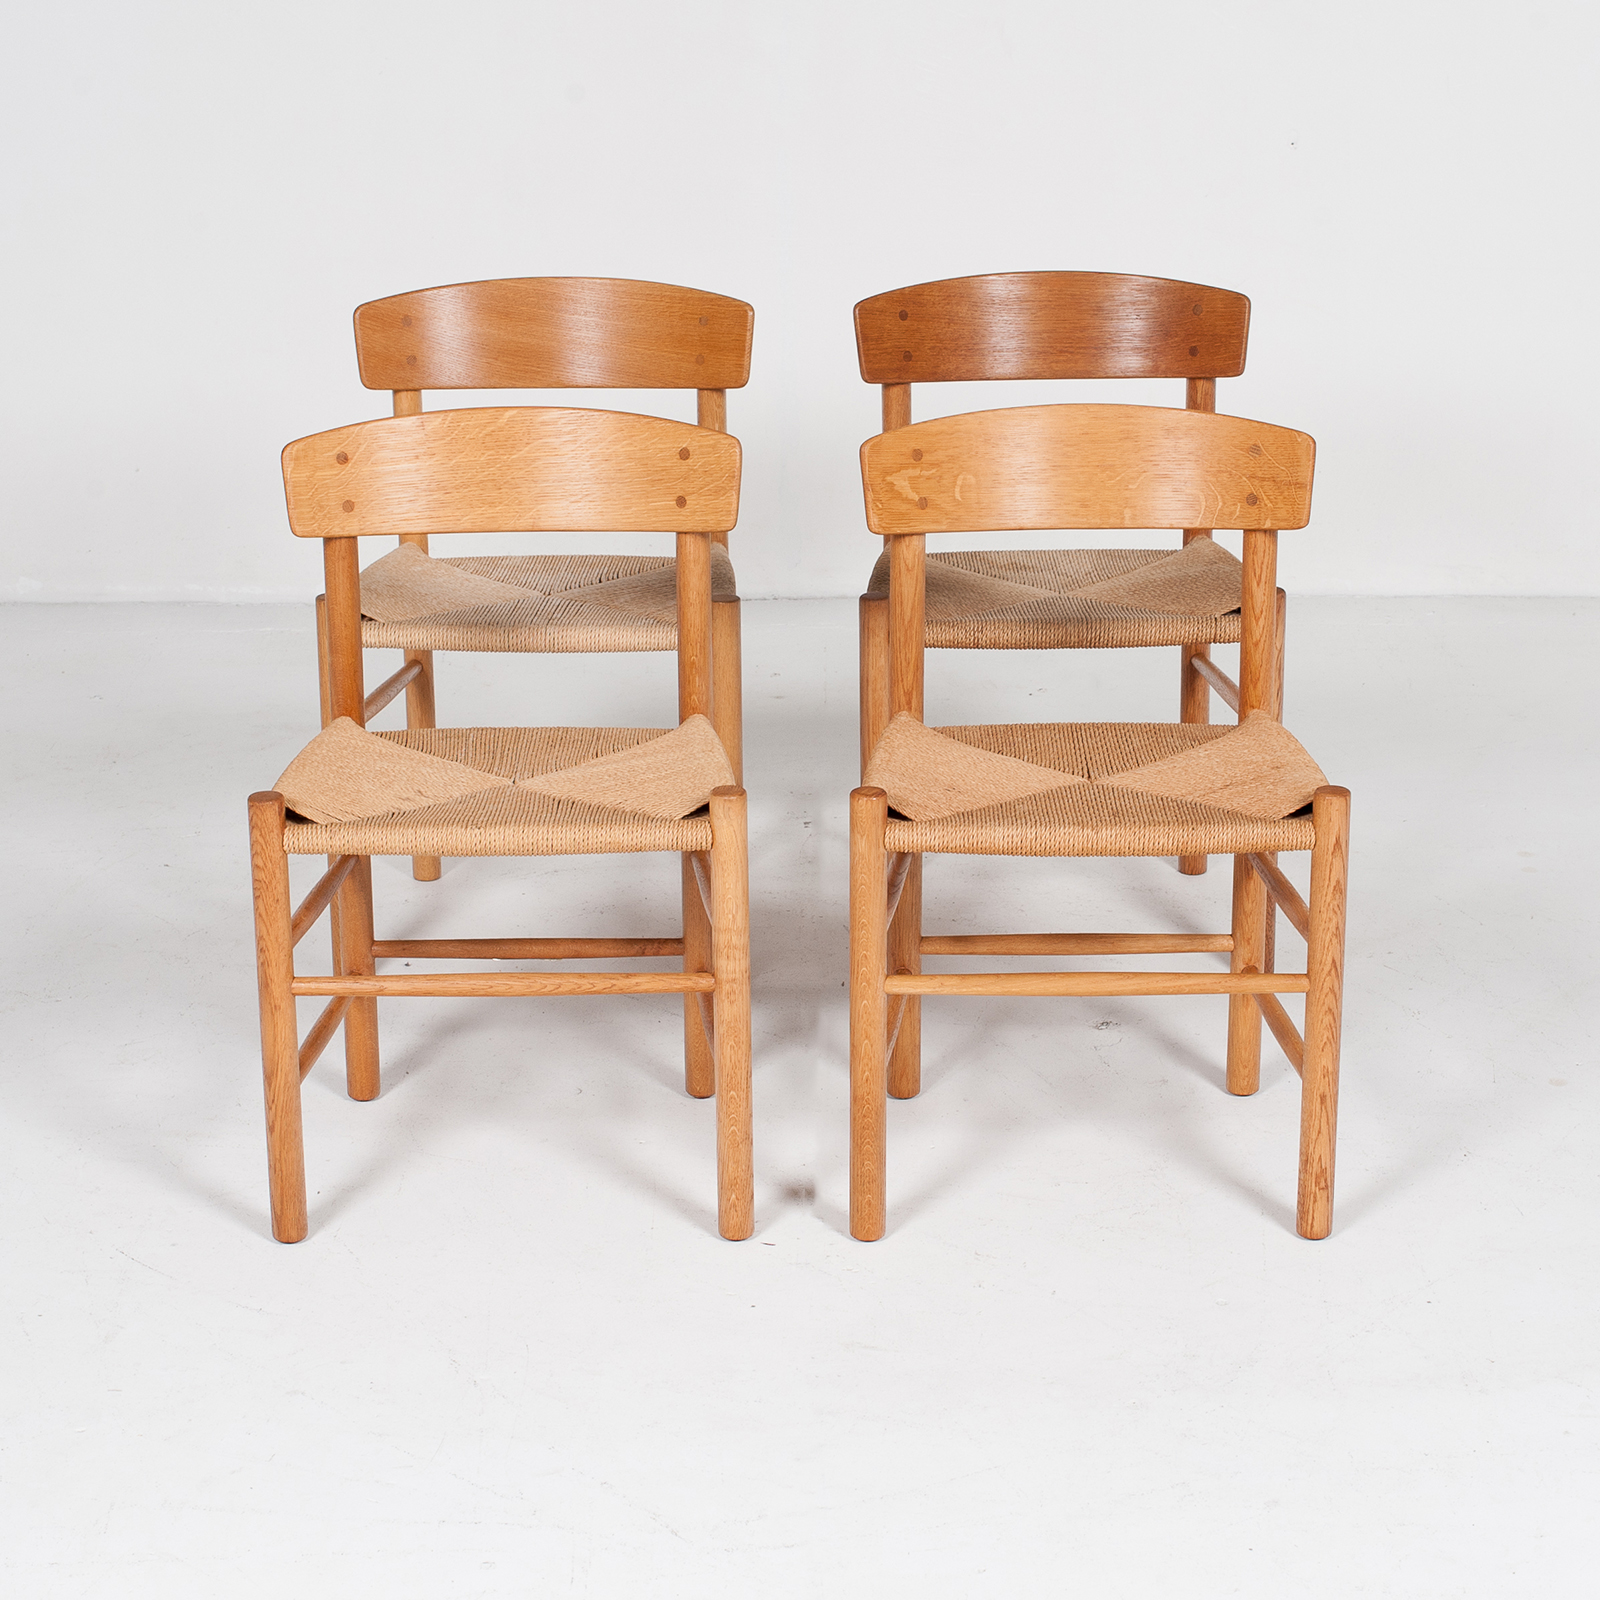 Set Of 4 Model J39 Mogensen Chairs By Borge Mogensen In Oak And Paper Cord, 1960s, Denmark94